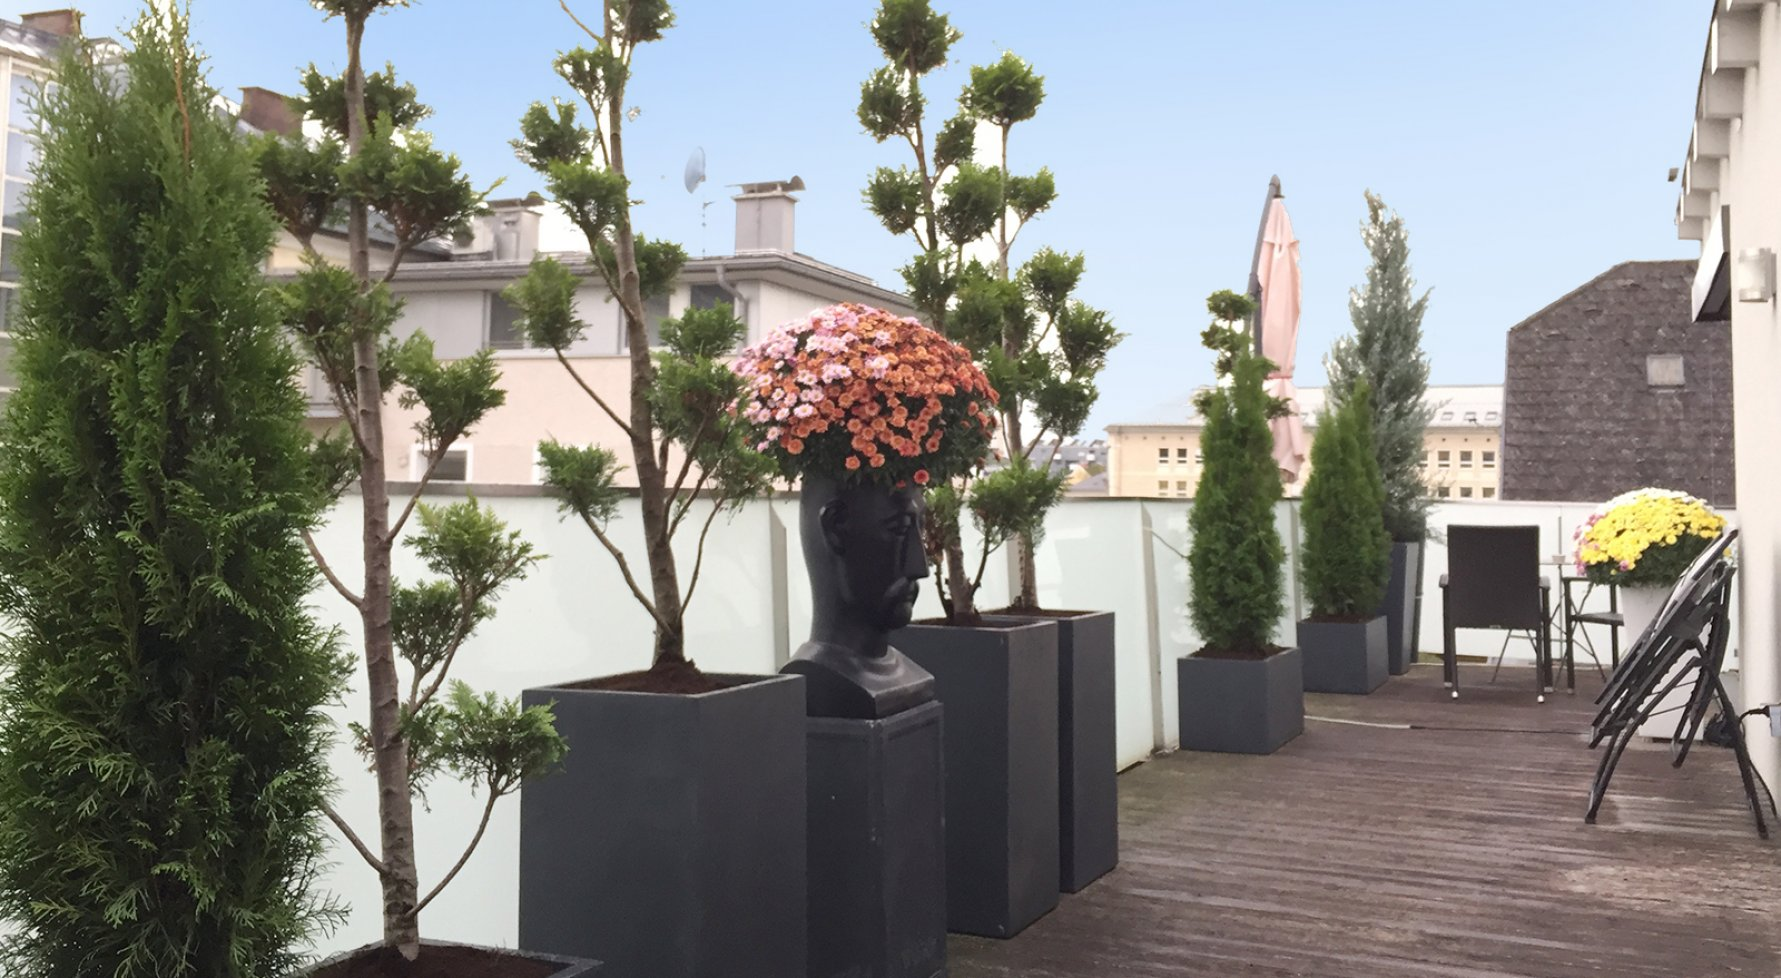 Property in 5020 Salzburg: DESIGNER PENTHOUSE APARTMENT in CENTRAL CITY LOCATION  - picture 1